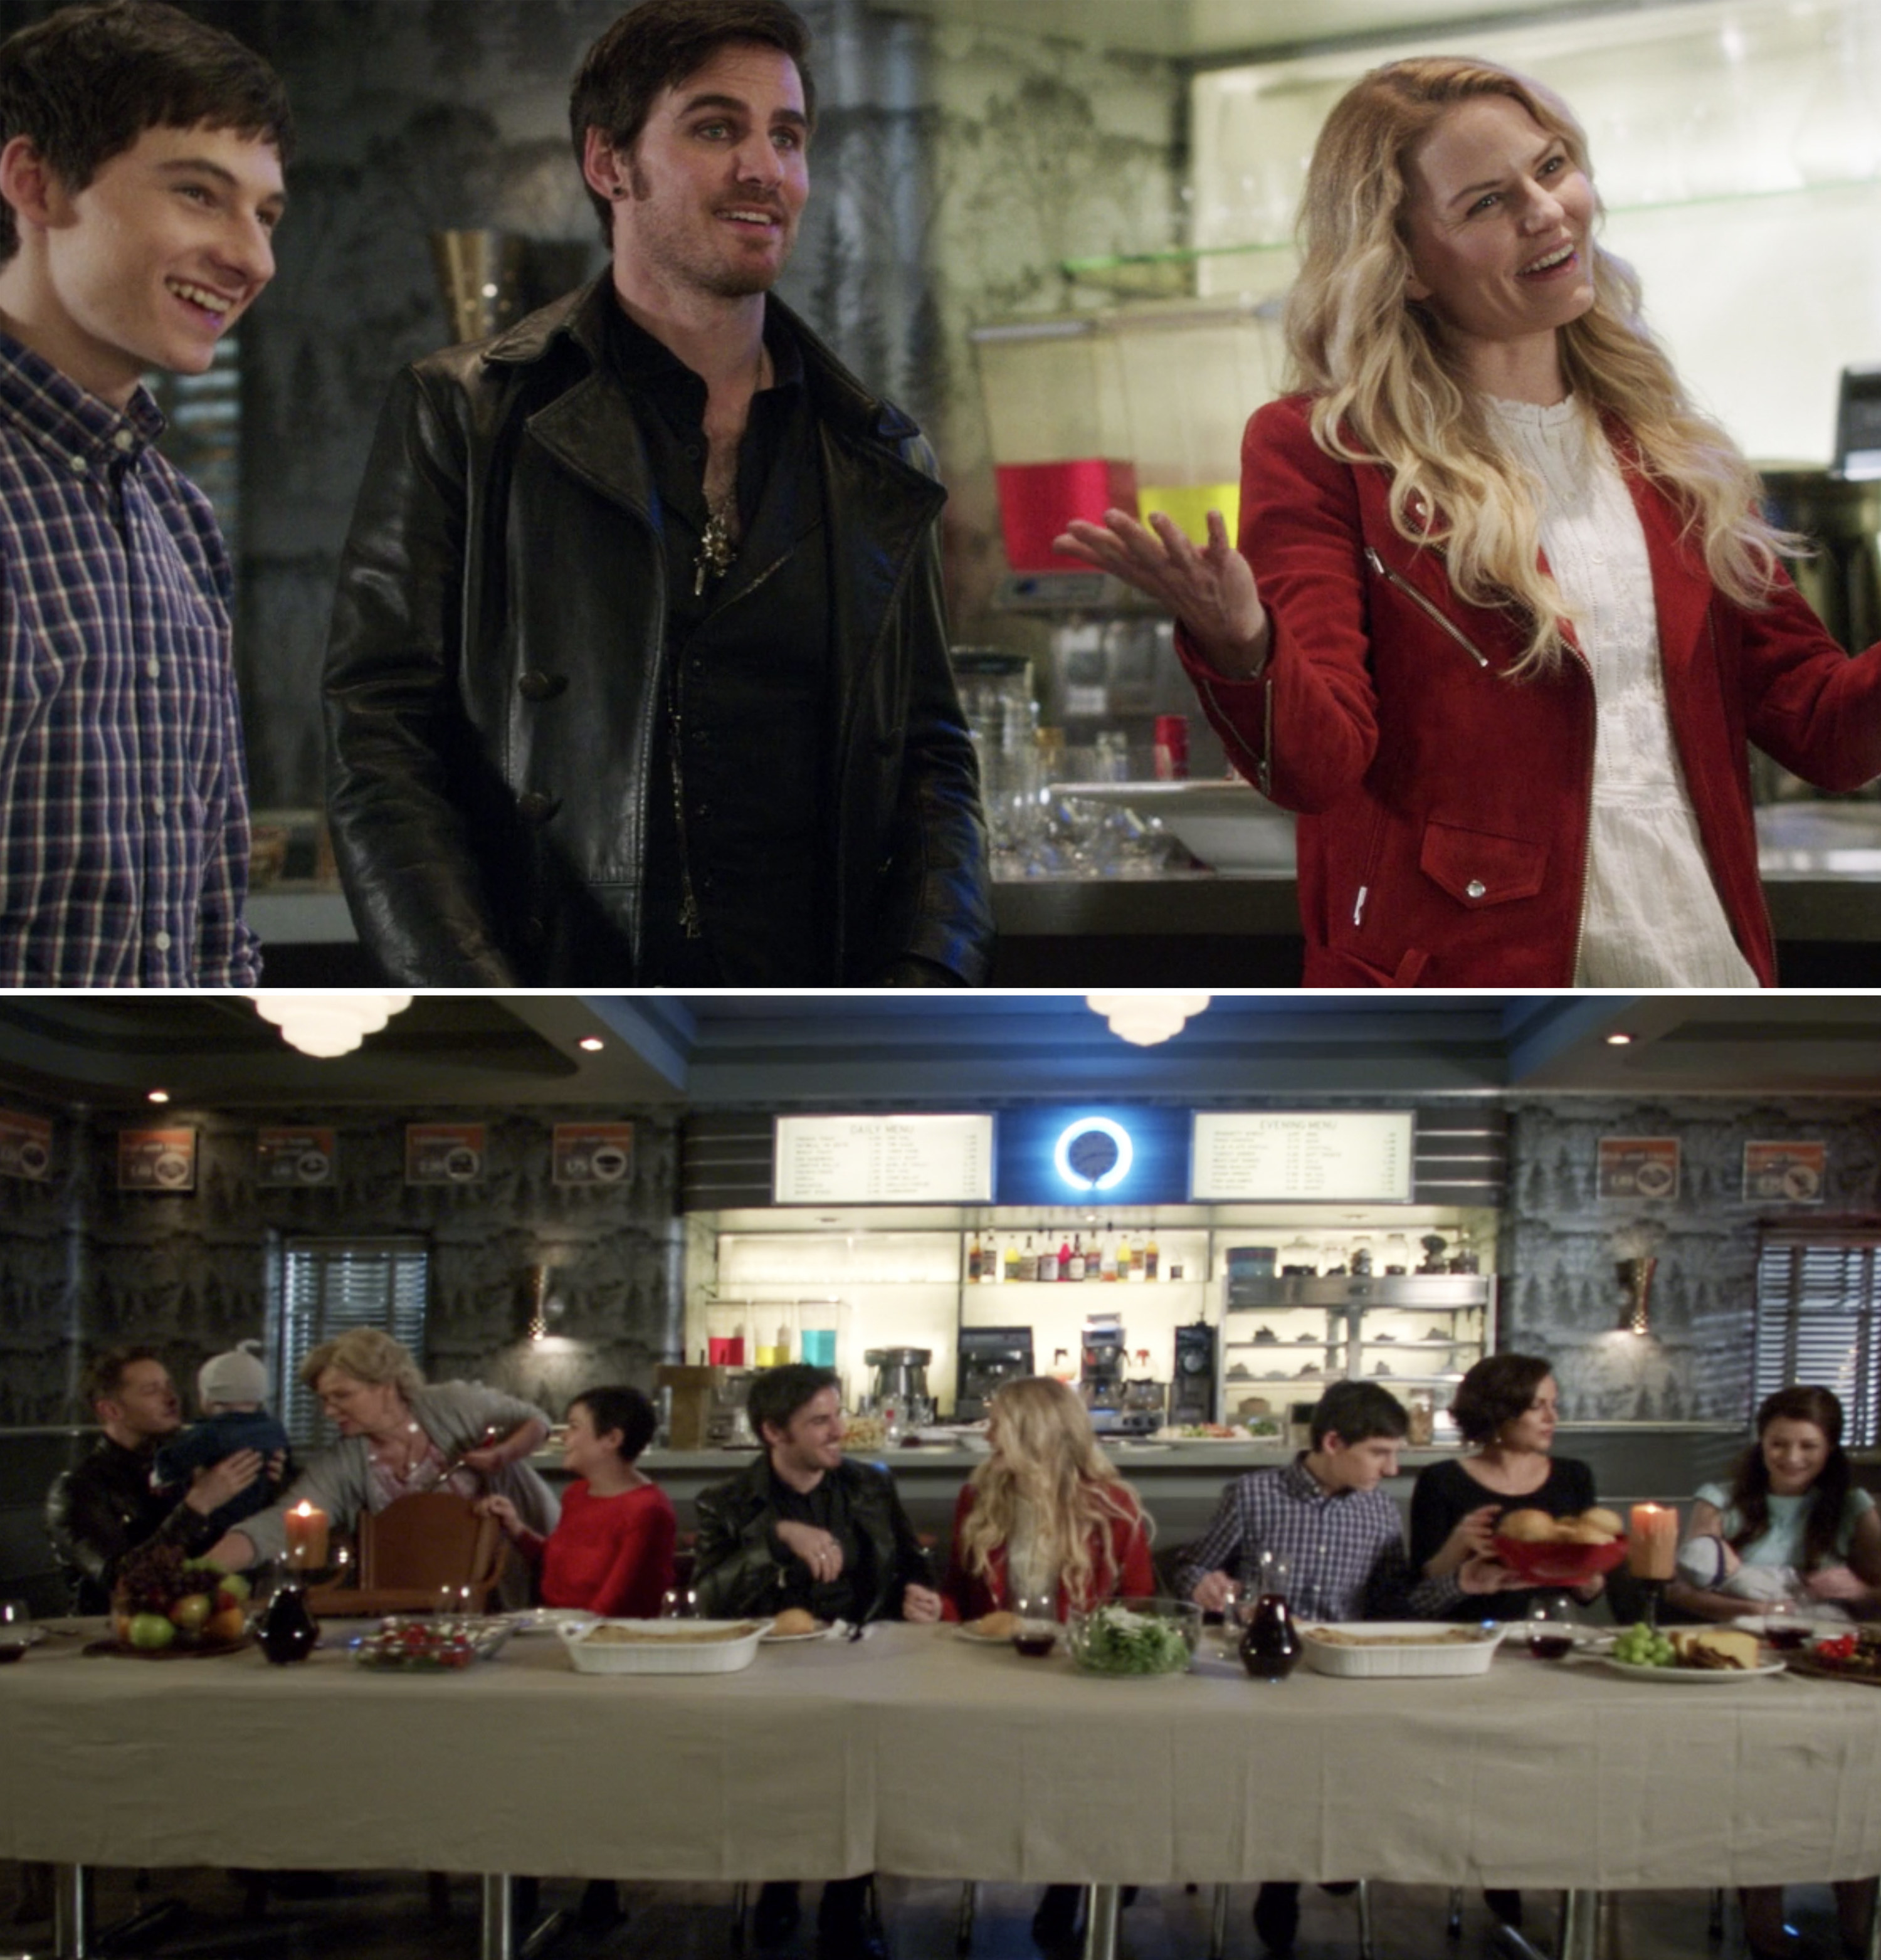 Hook, Emma, Charming, Snow, and their friends having lunch together